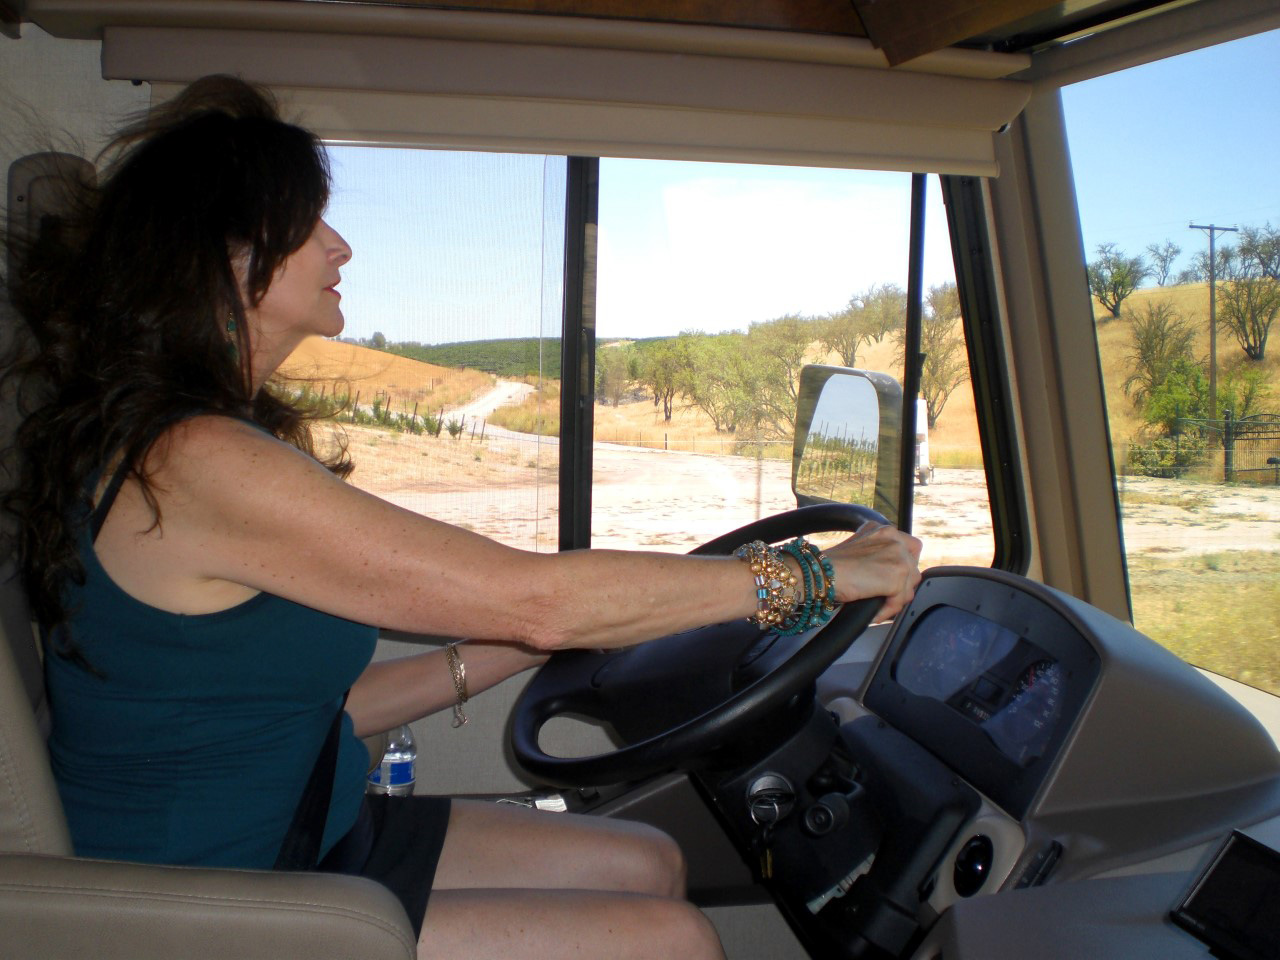 Driving the RV